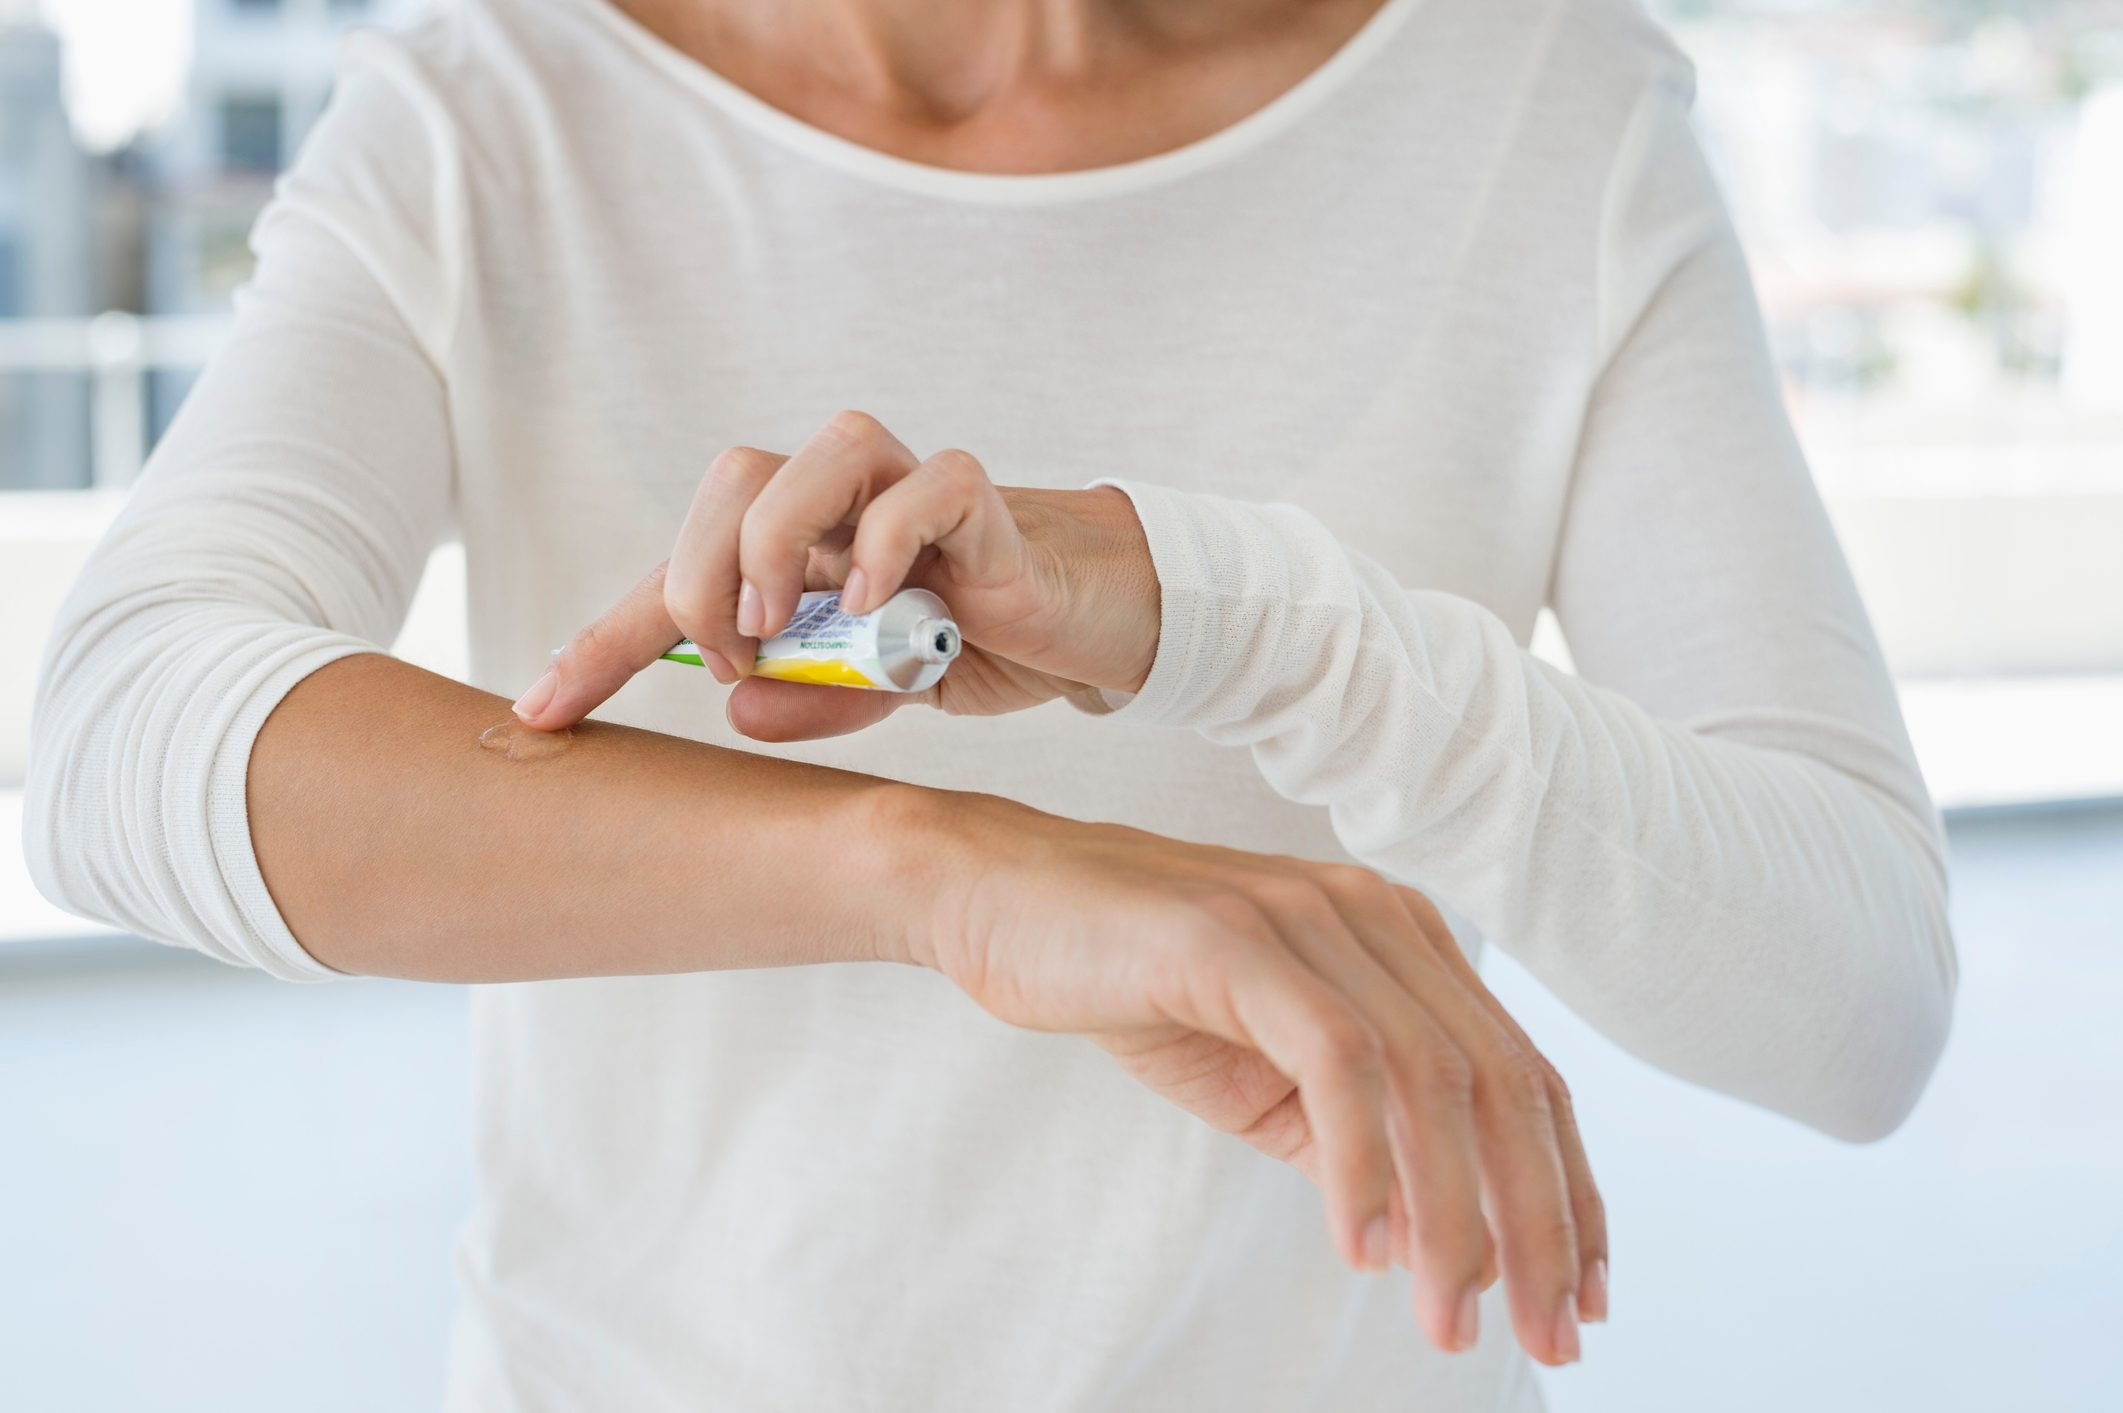 woman applying ointment on arm